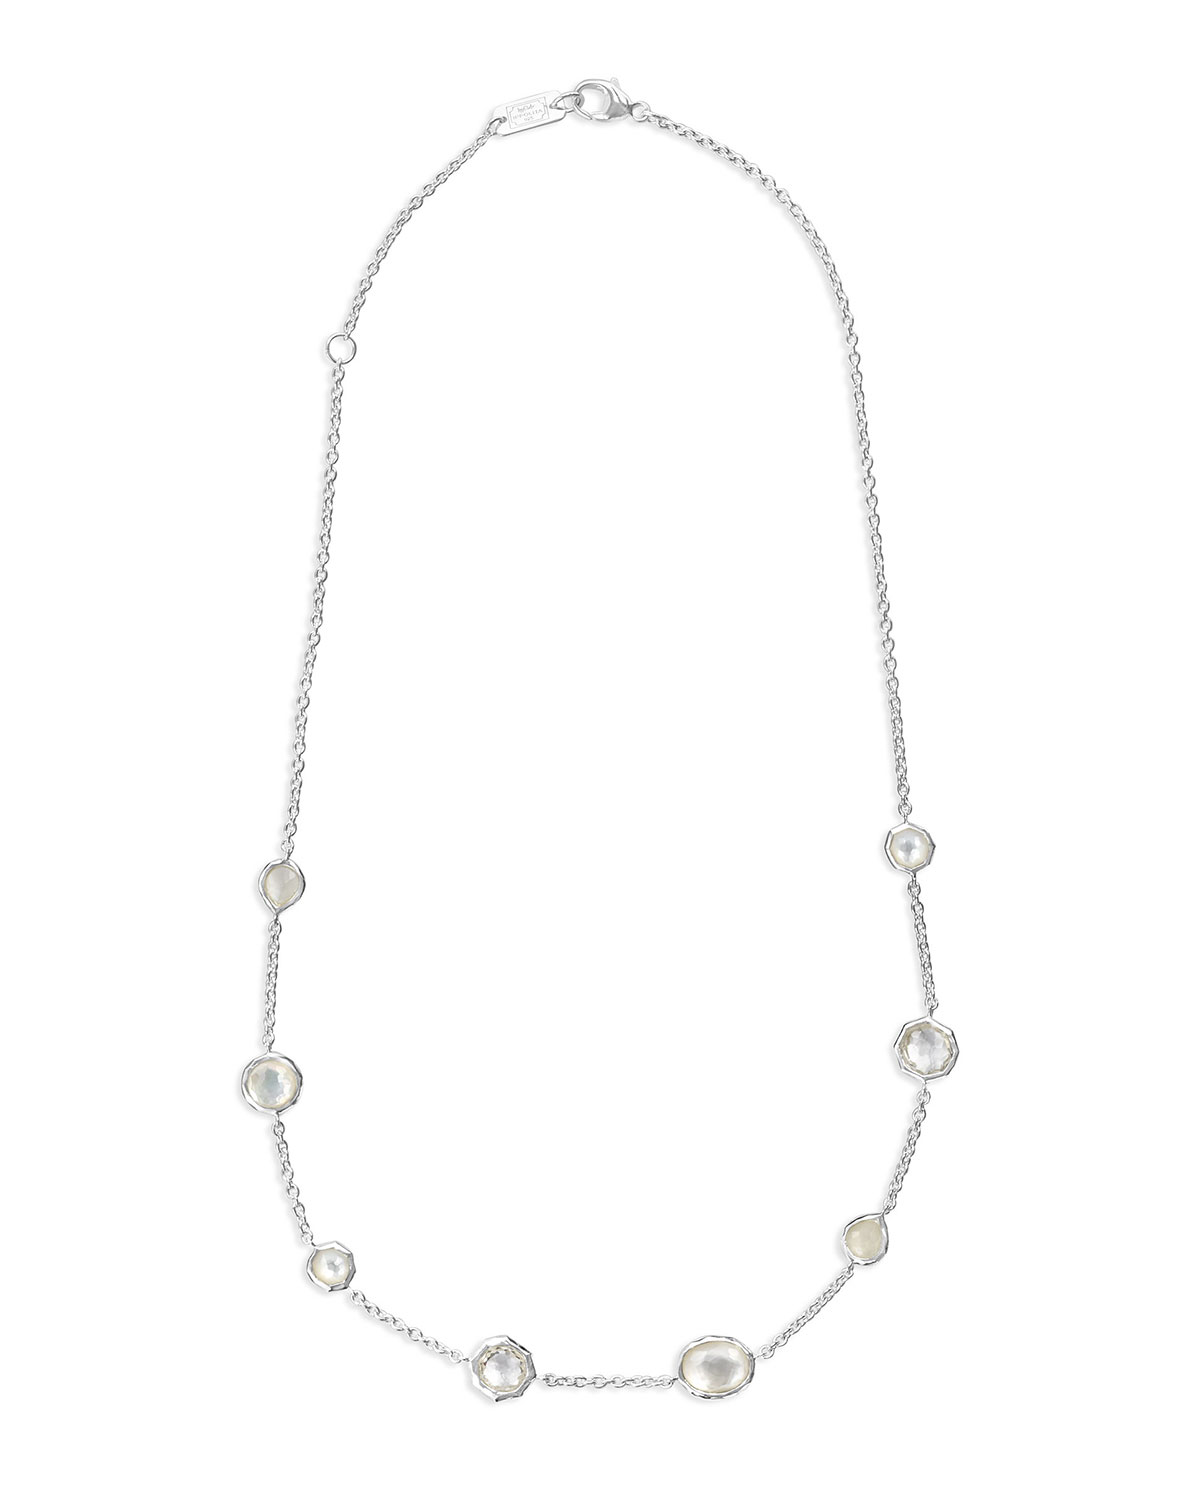 Ippolita Wonderland Mini Gelato Short Station Necklace in Flirt